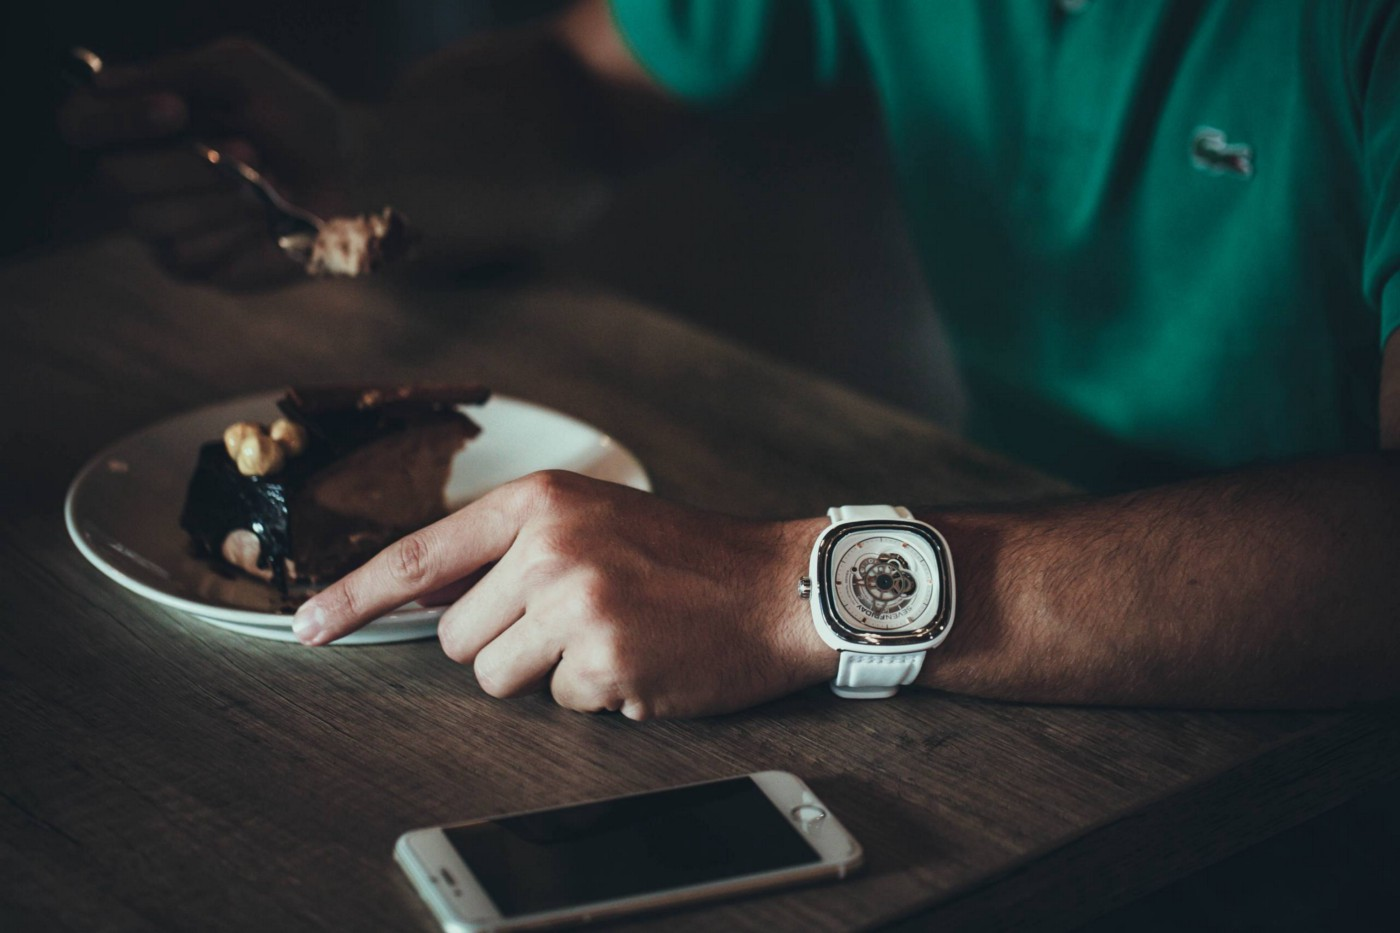 Person eating while wearing a wristwatch.